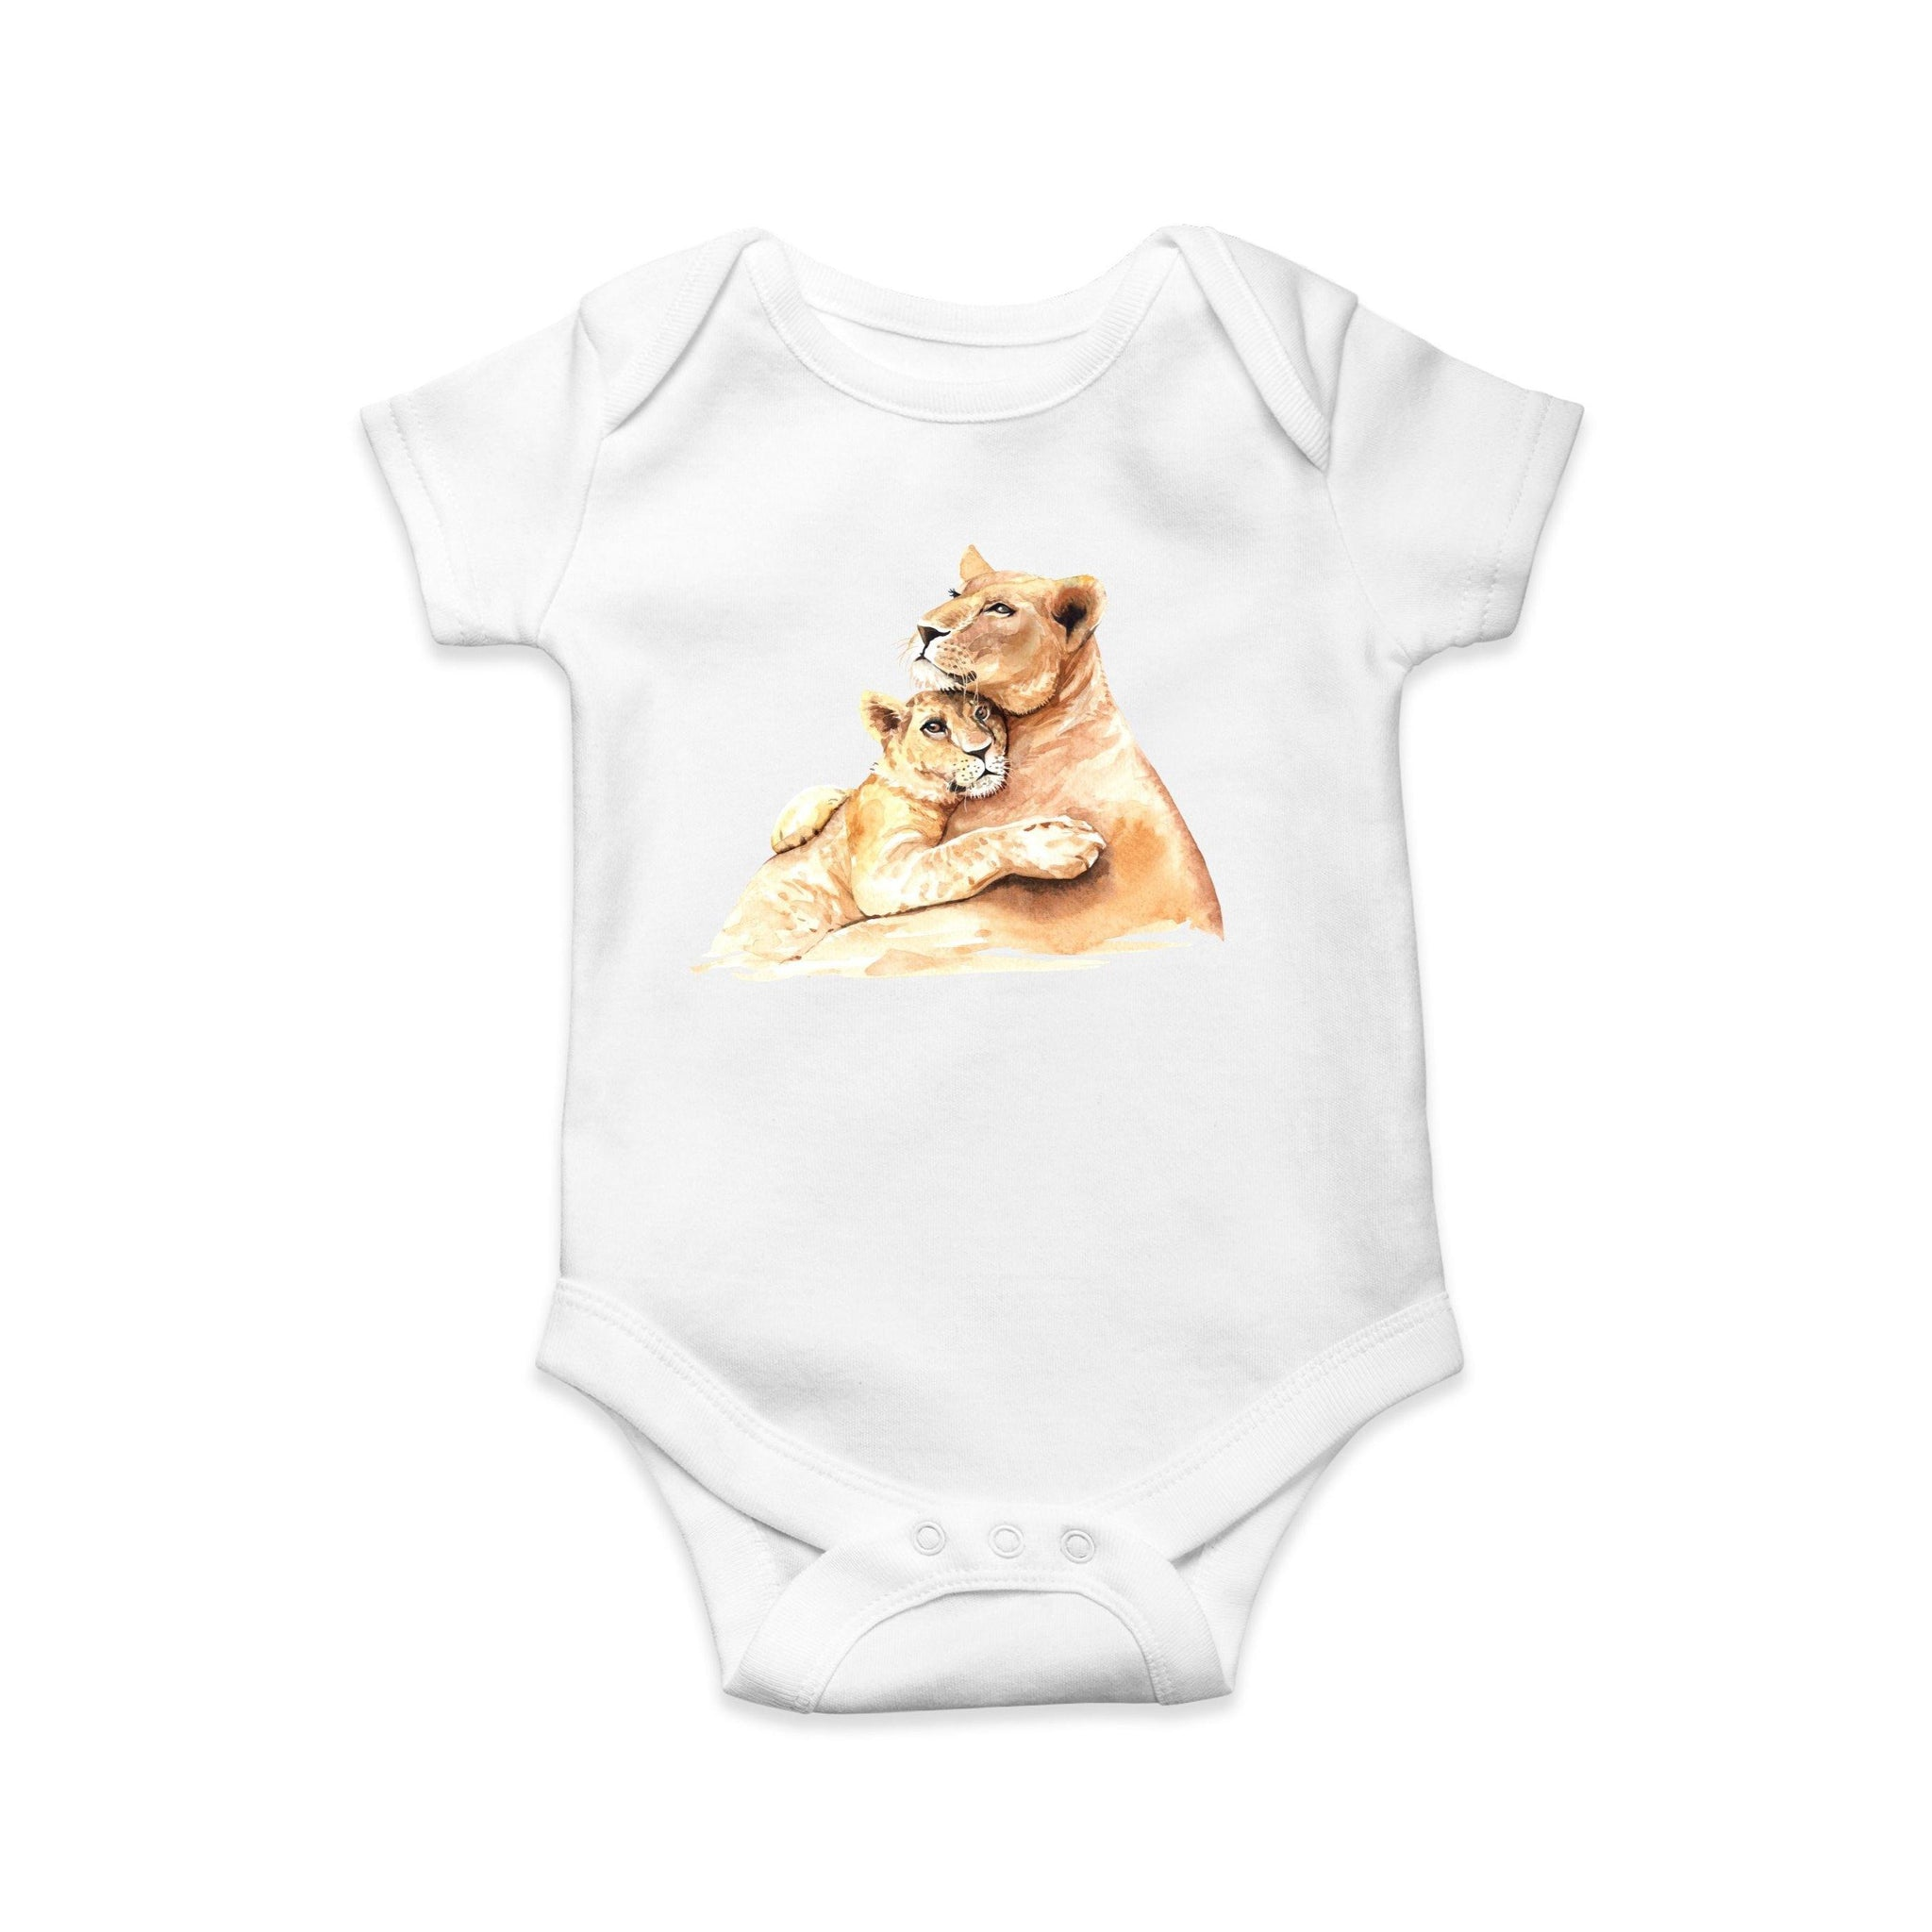 Lion baby body suit - Sew Tilley